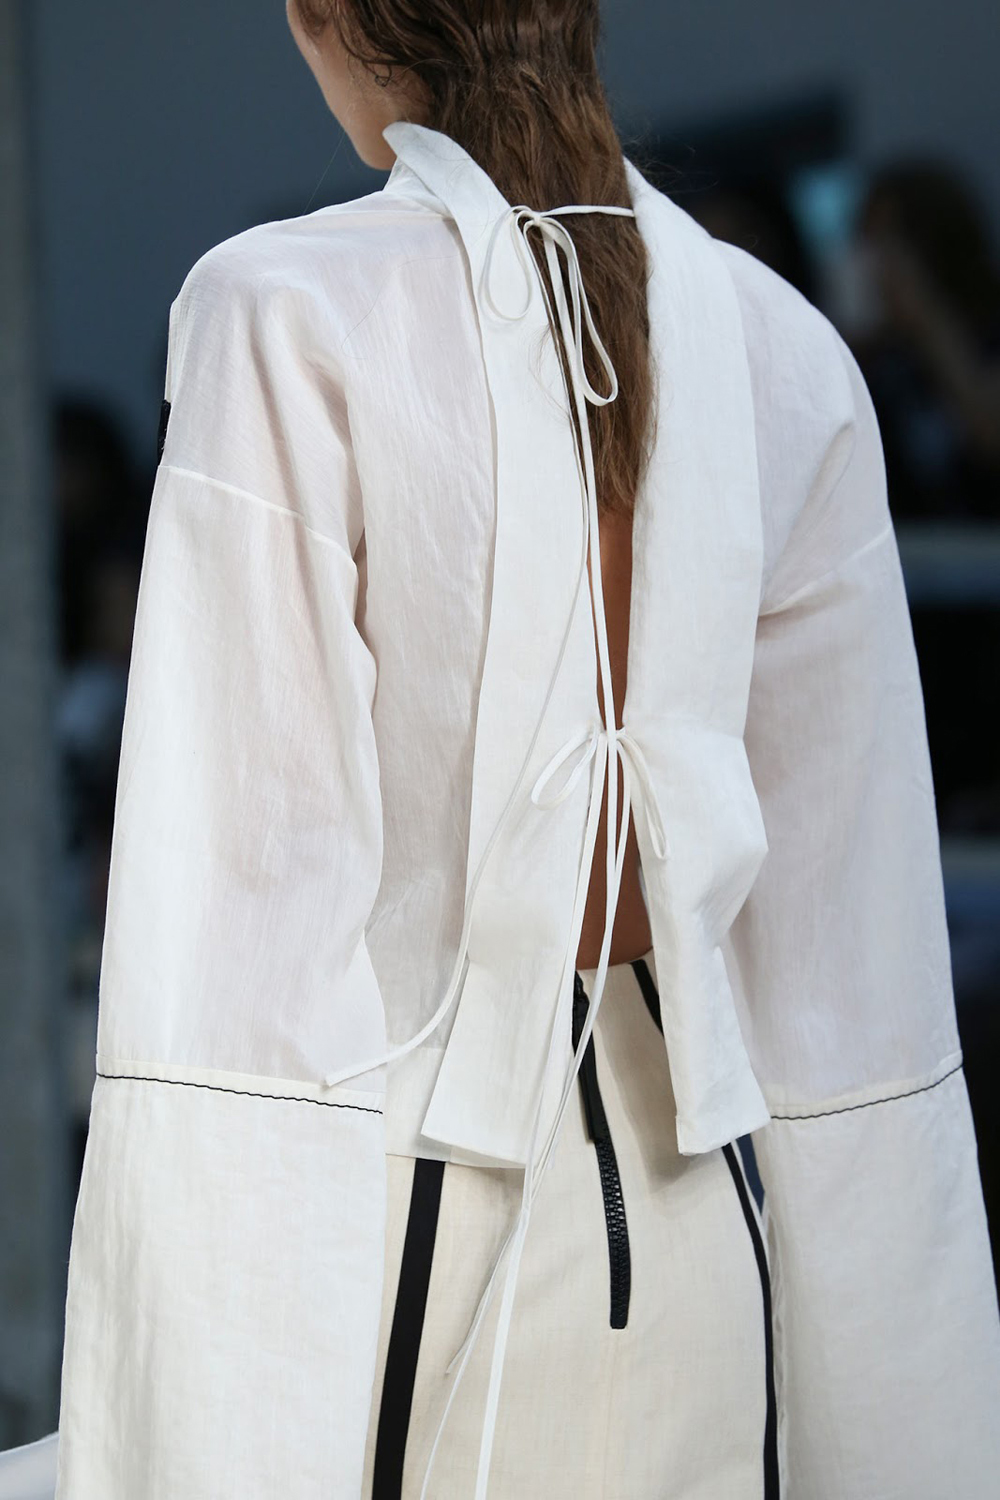 tied, tied up, street style, trends, ties, back details, 2017 trends, fashion, oracle fox